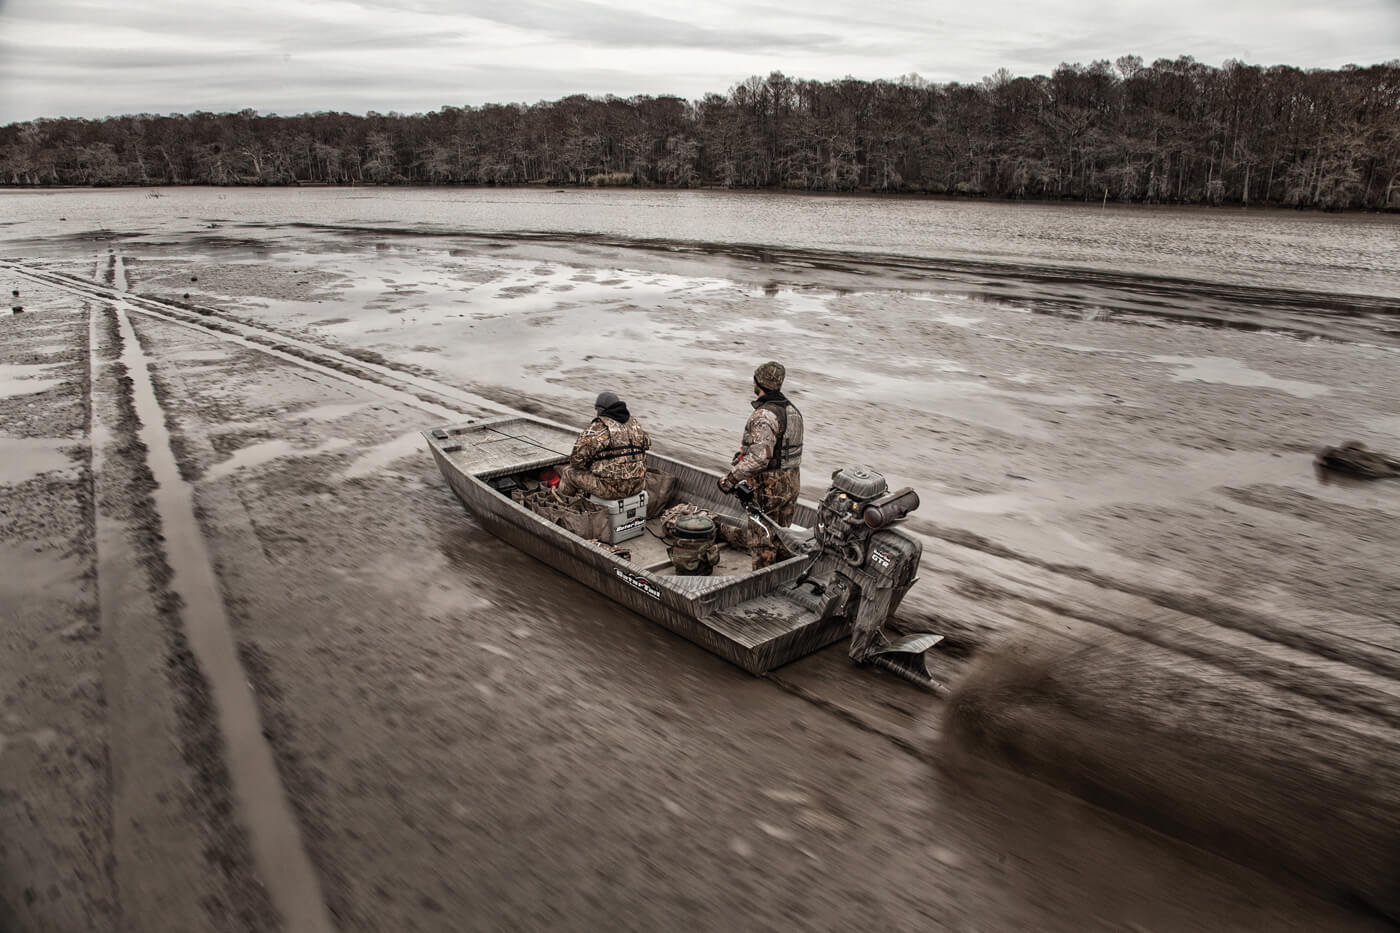 Gator-Tail watercraft speeding through mud bog